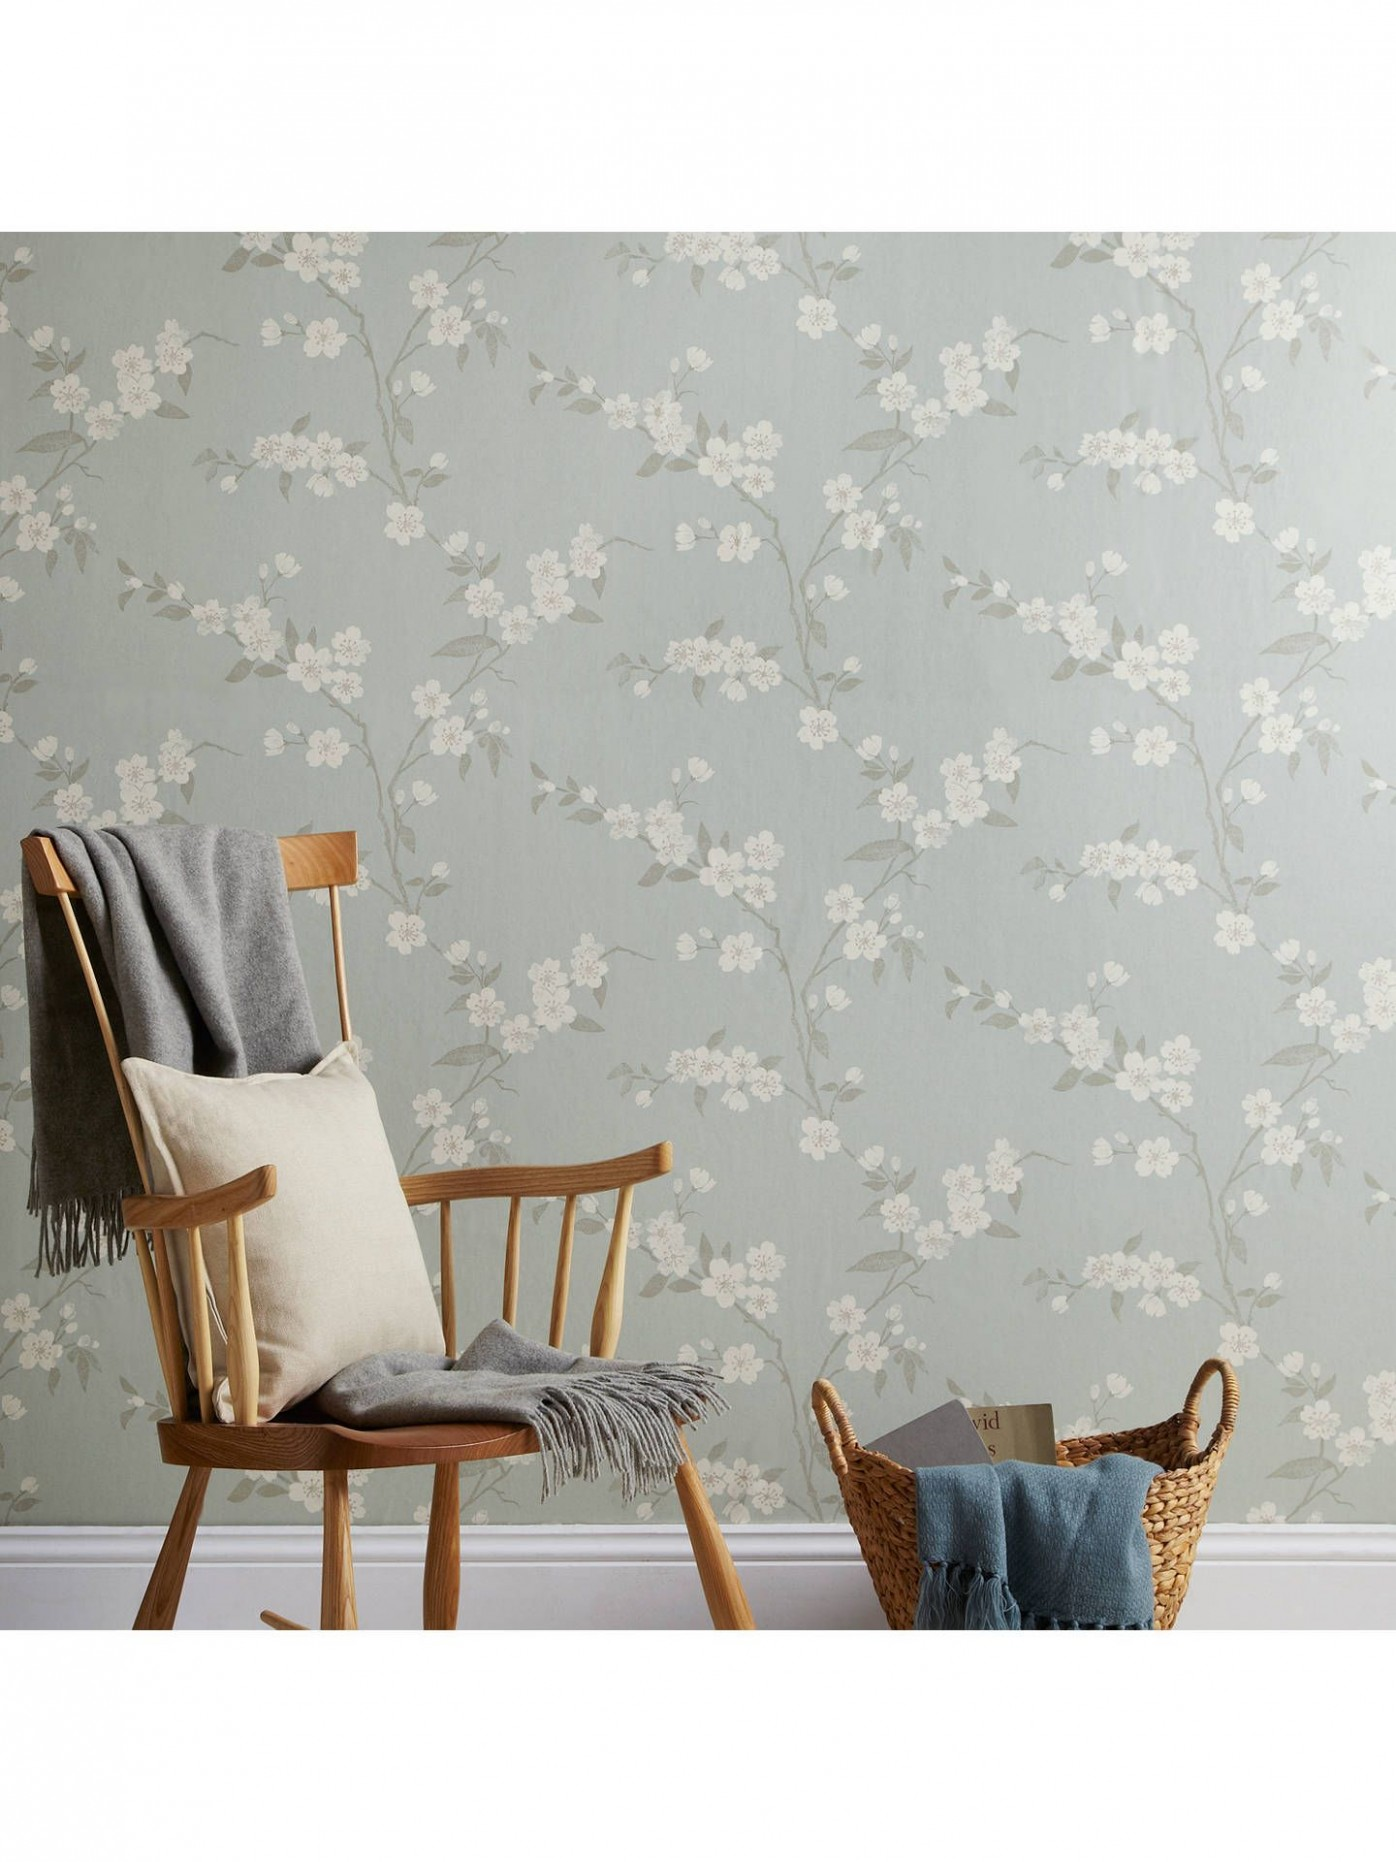 John Lewis & Partners Cherry Blossom Wallpaper, Eau De Nil  - Bedroom Wallpaper Ideas John Lewis